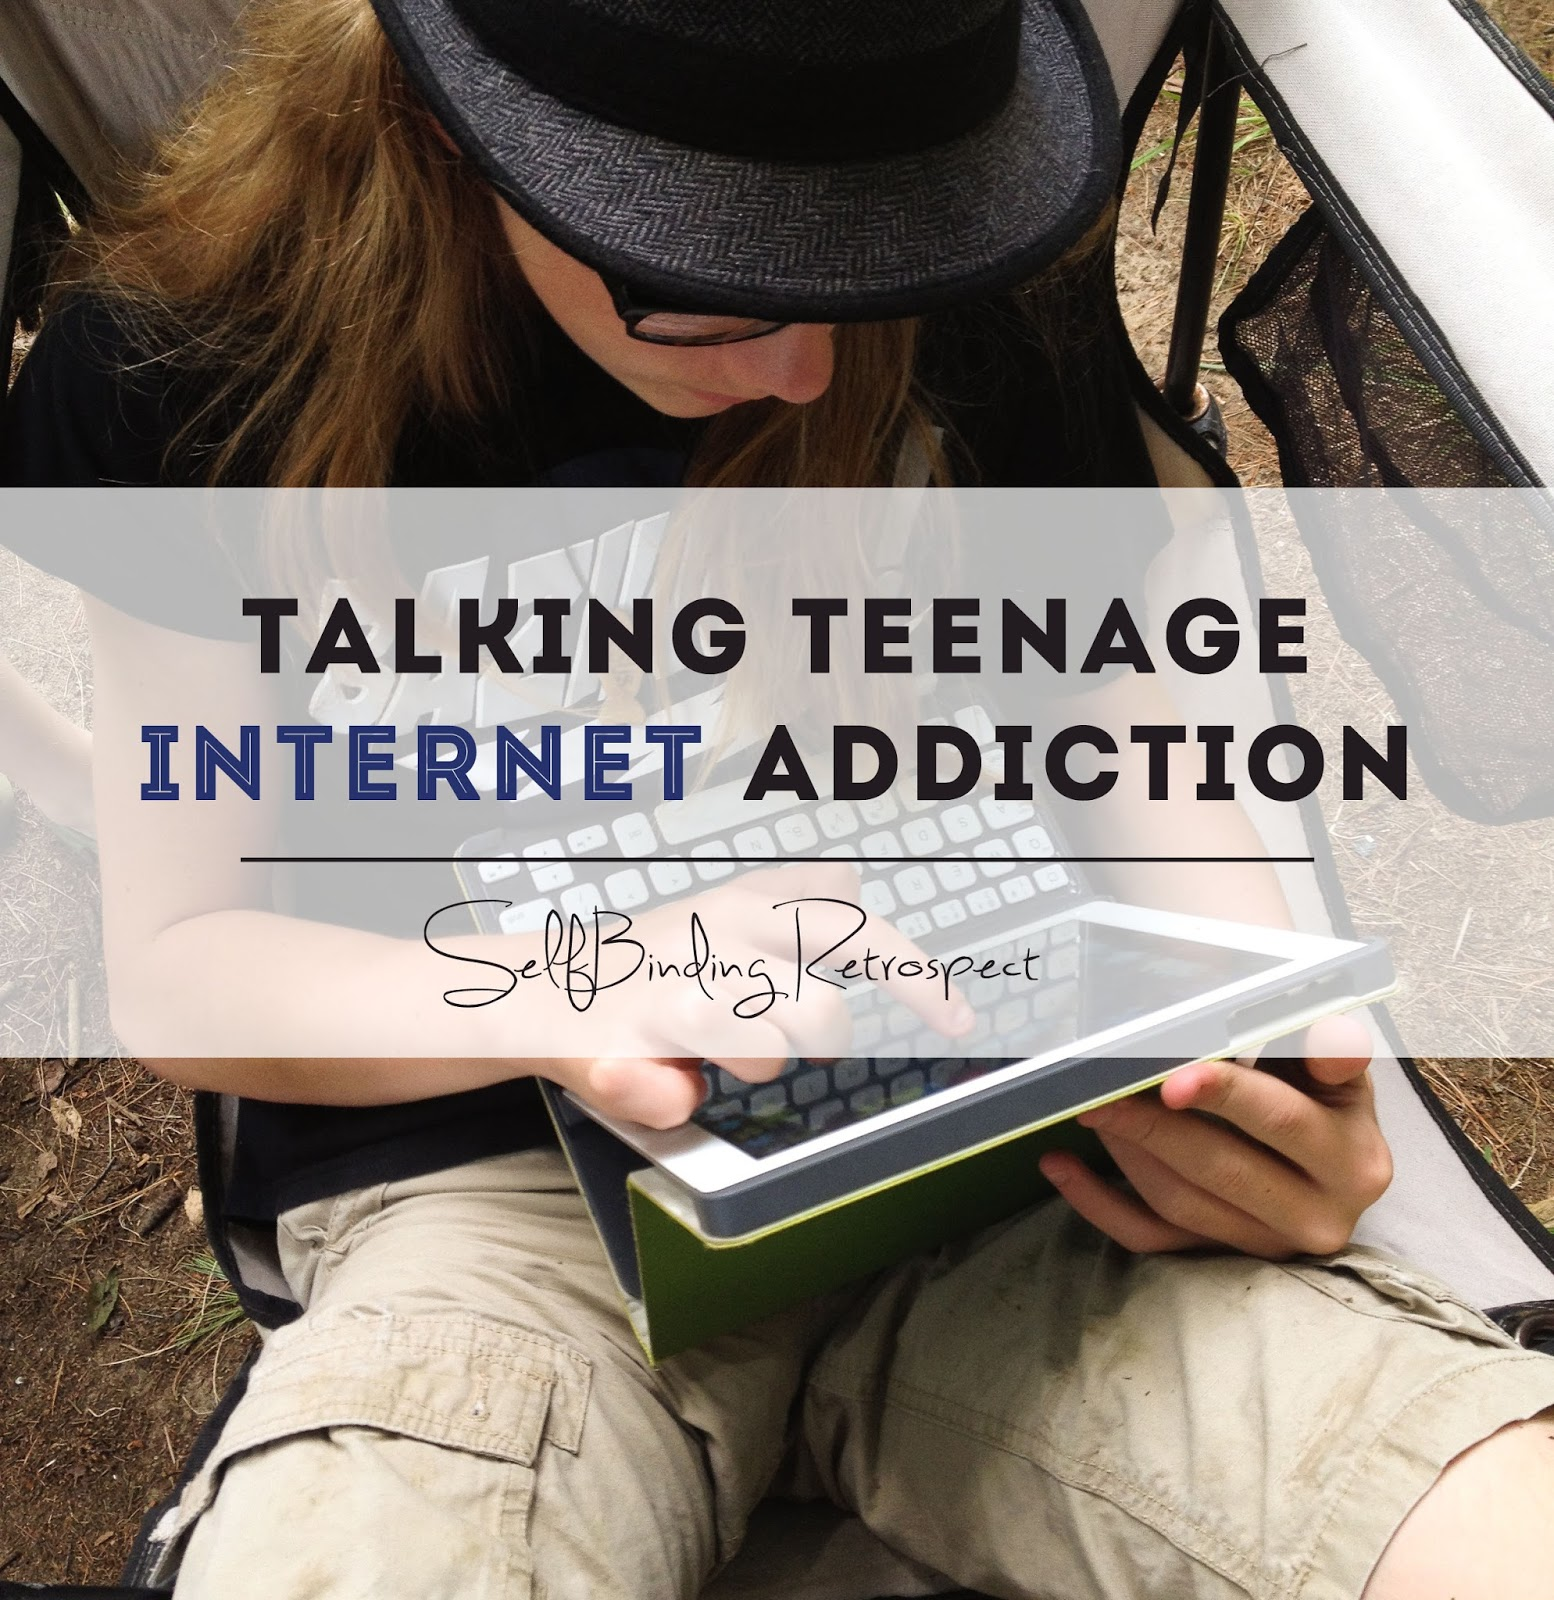 Talking teenage internet addiction - SelfBinding Retrospect by Alanna Rusnak